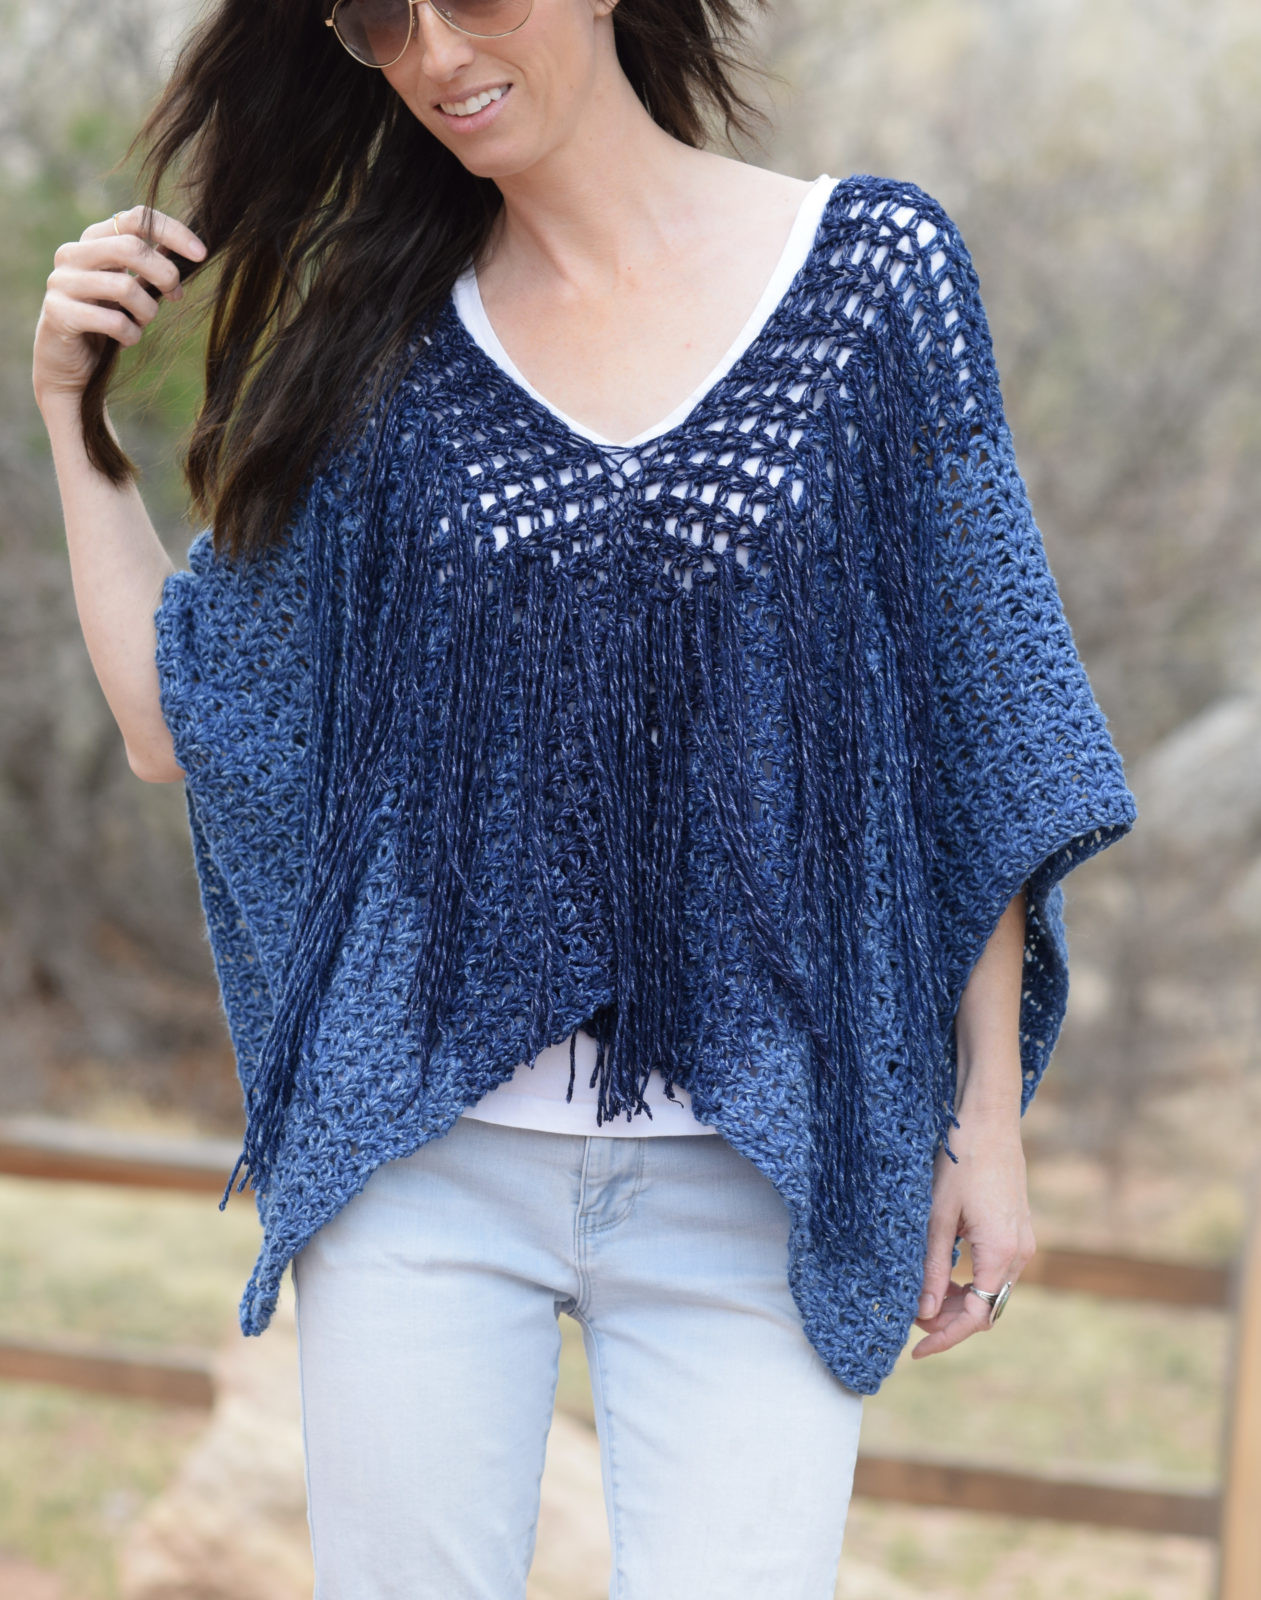 Free Poncho Patterns Awesome Azul V Mesh Easy Crochet Poncho Pattern – Mama In A Stitch Of Marvelous 41 Models Free Poncho Patterns